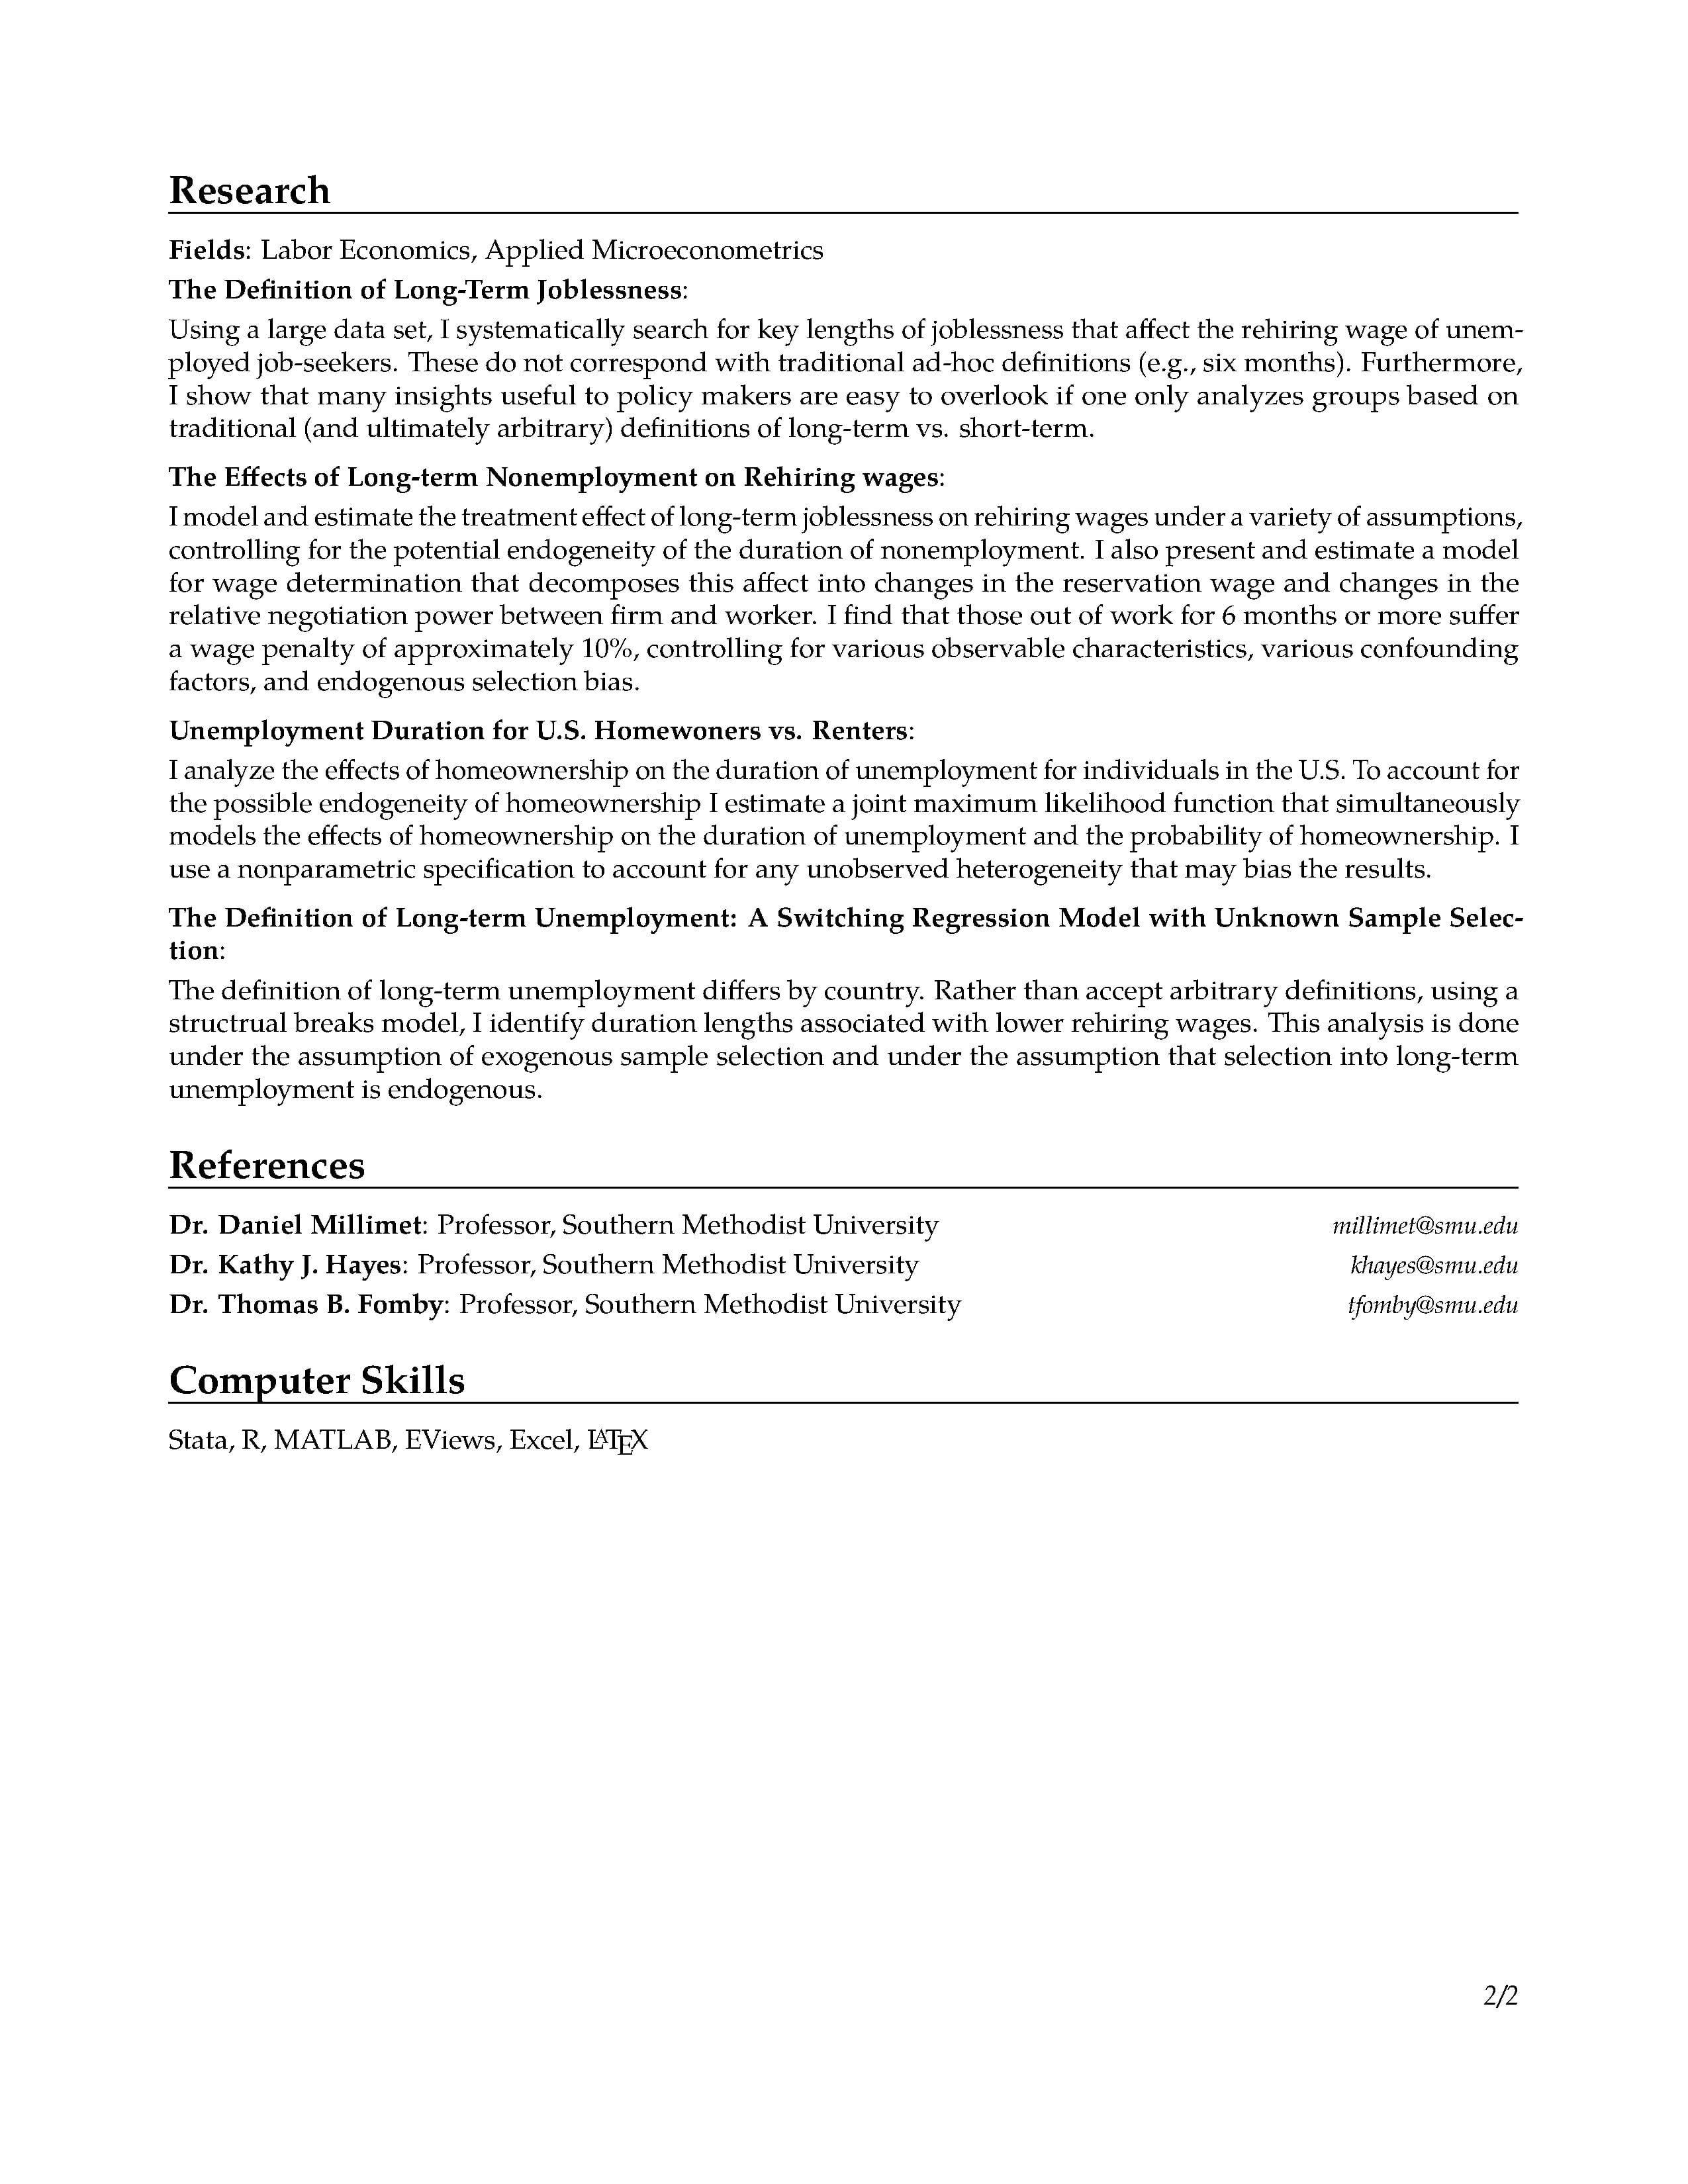 curriculum vitae gregory johnson cv page2